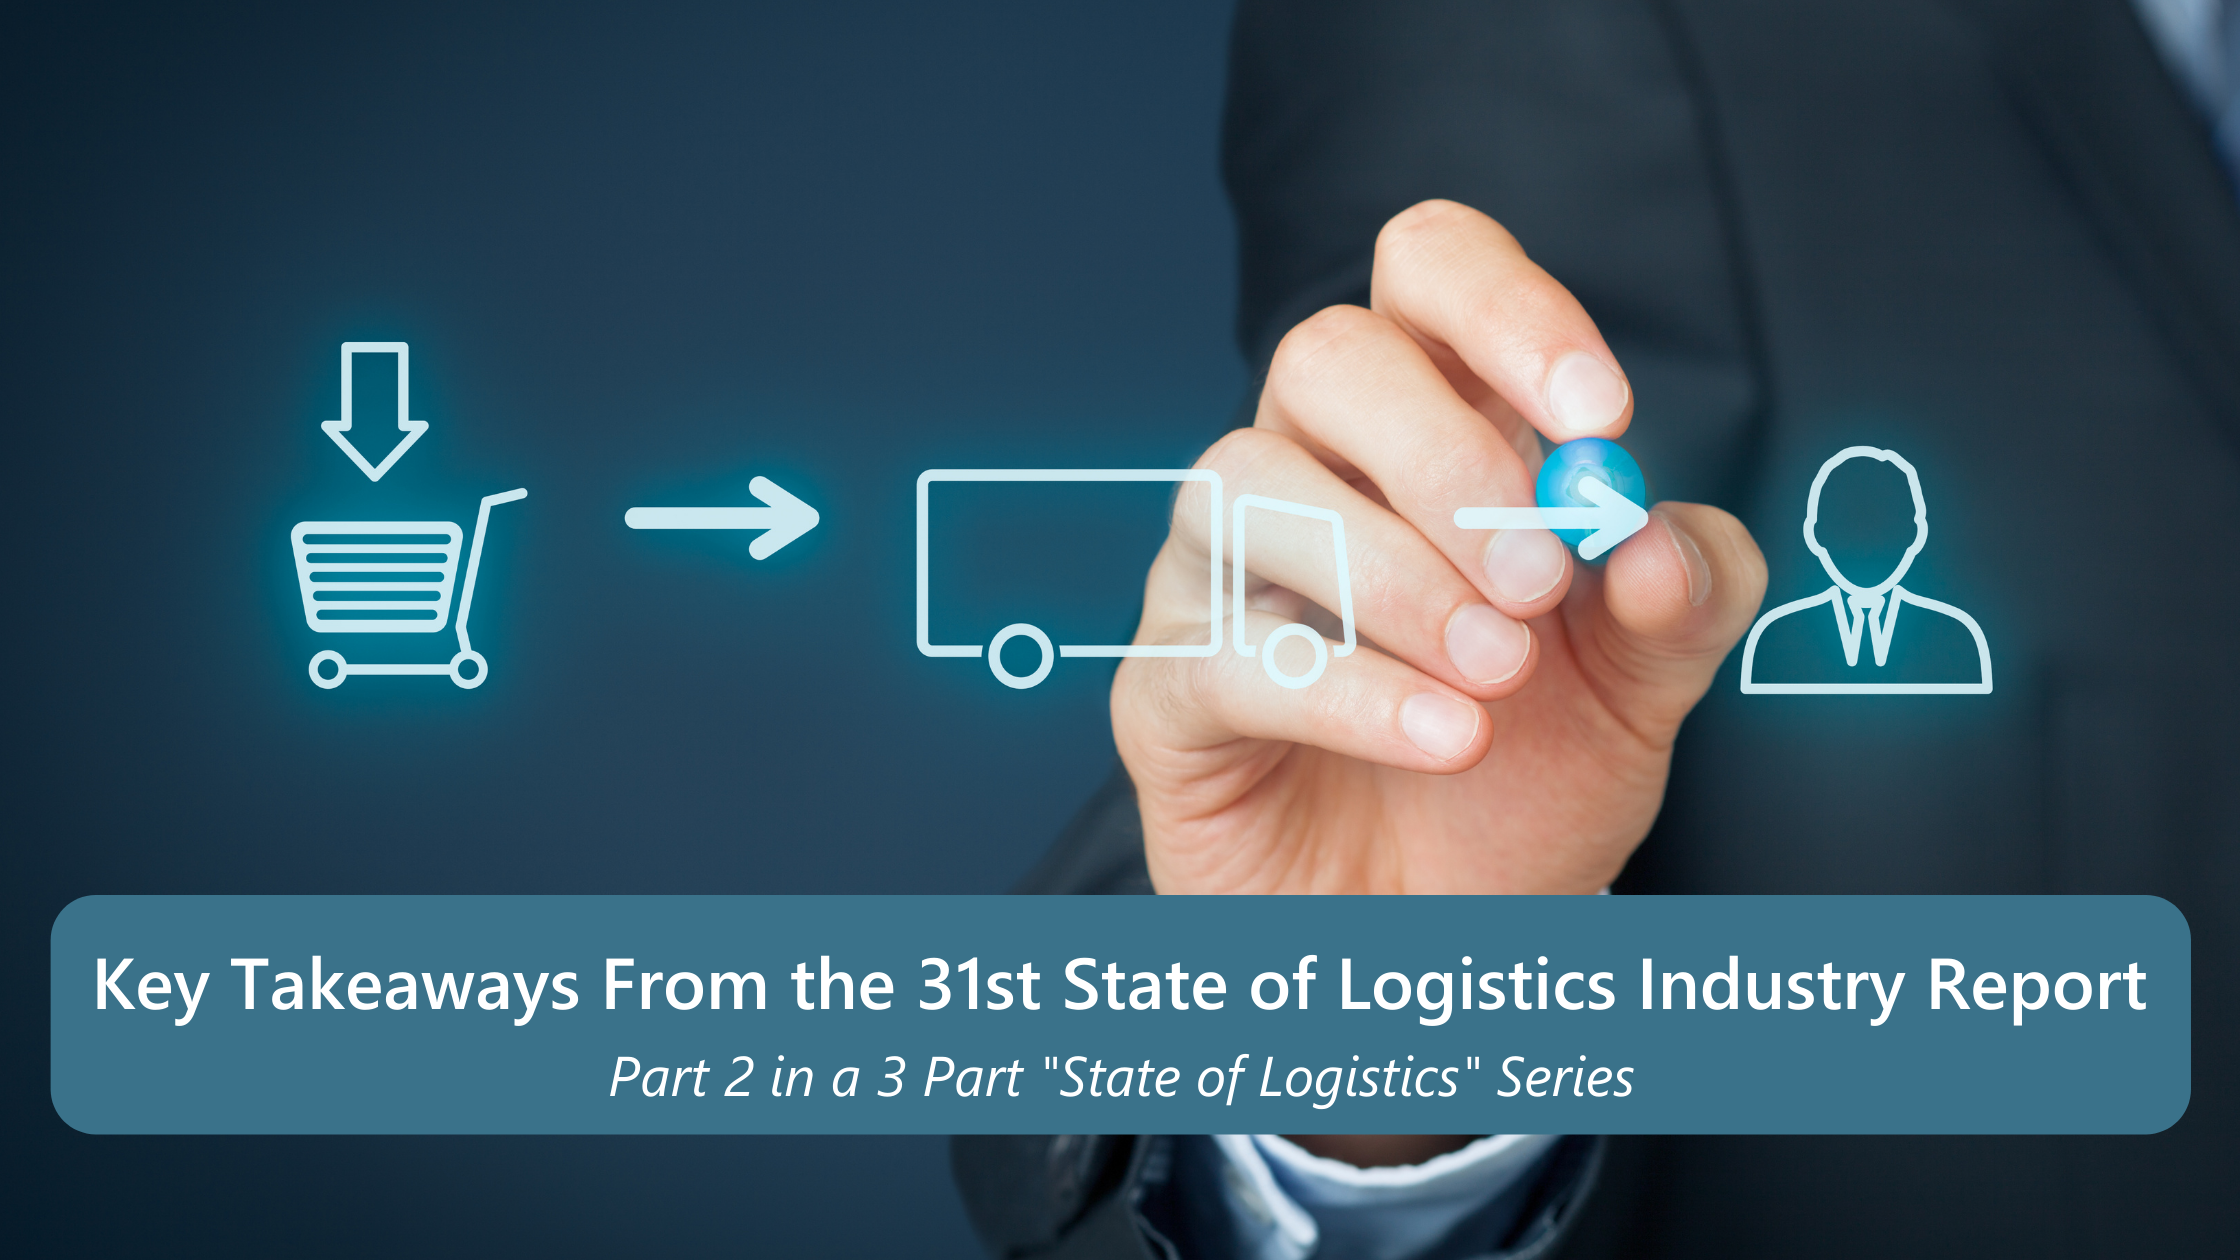 Key Takeaways From the 31st State of Logistics Industry Report-1